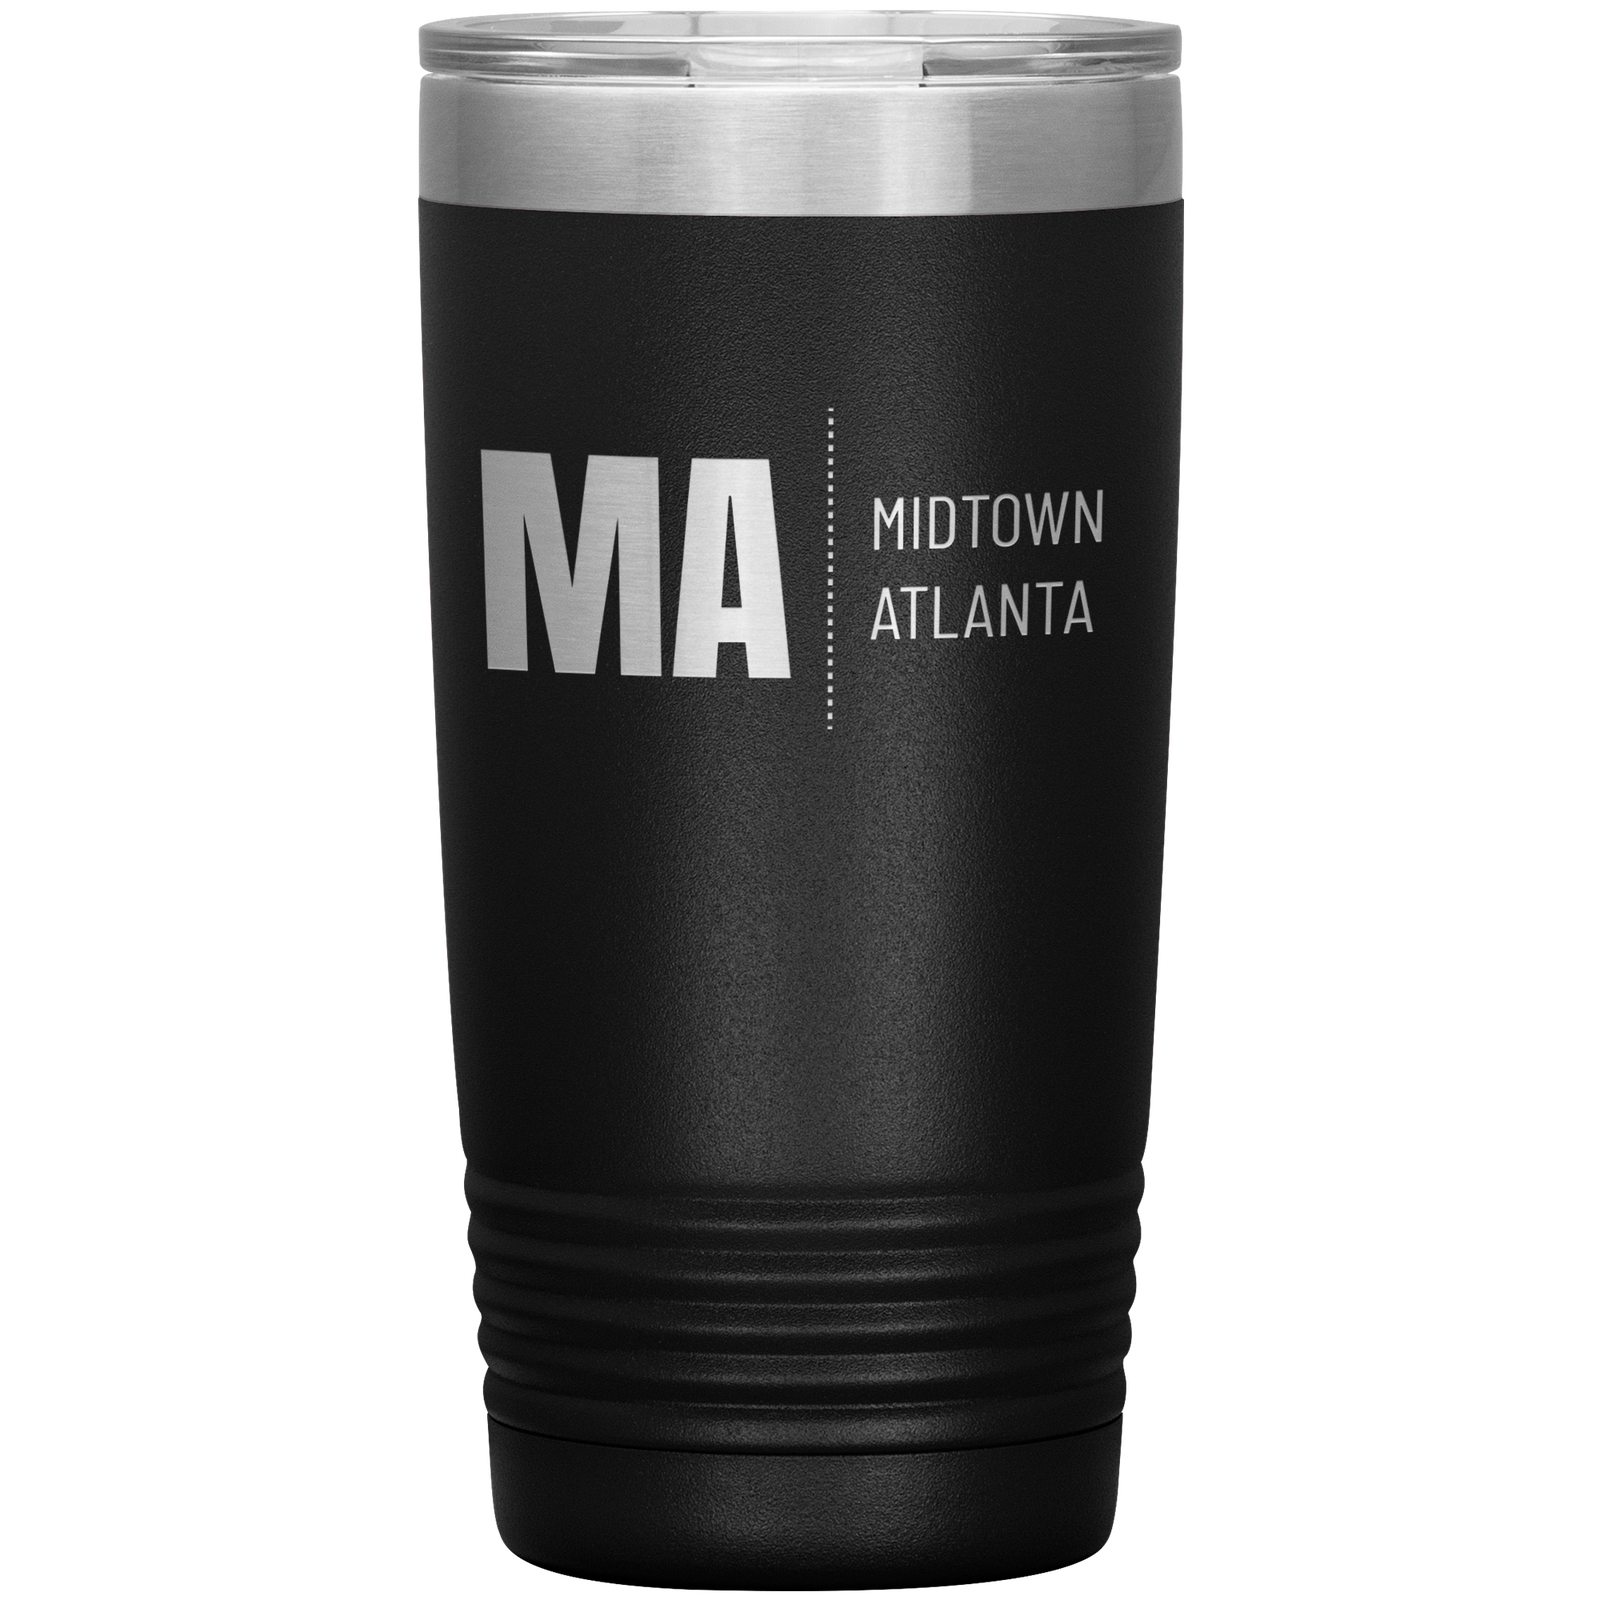 Primary image for Midtown Atlanta Tumbler